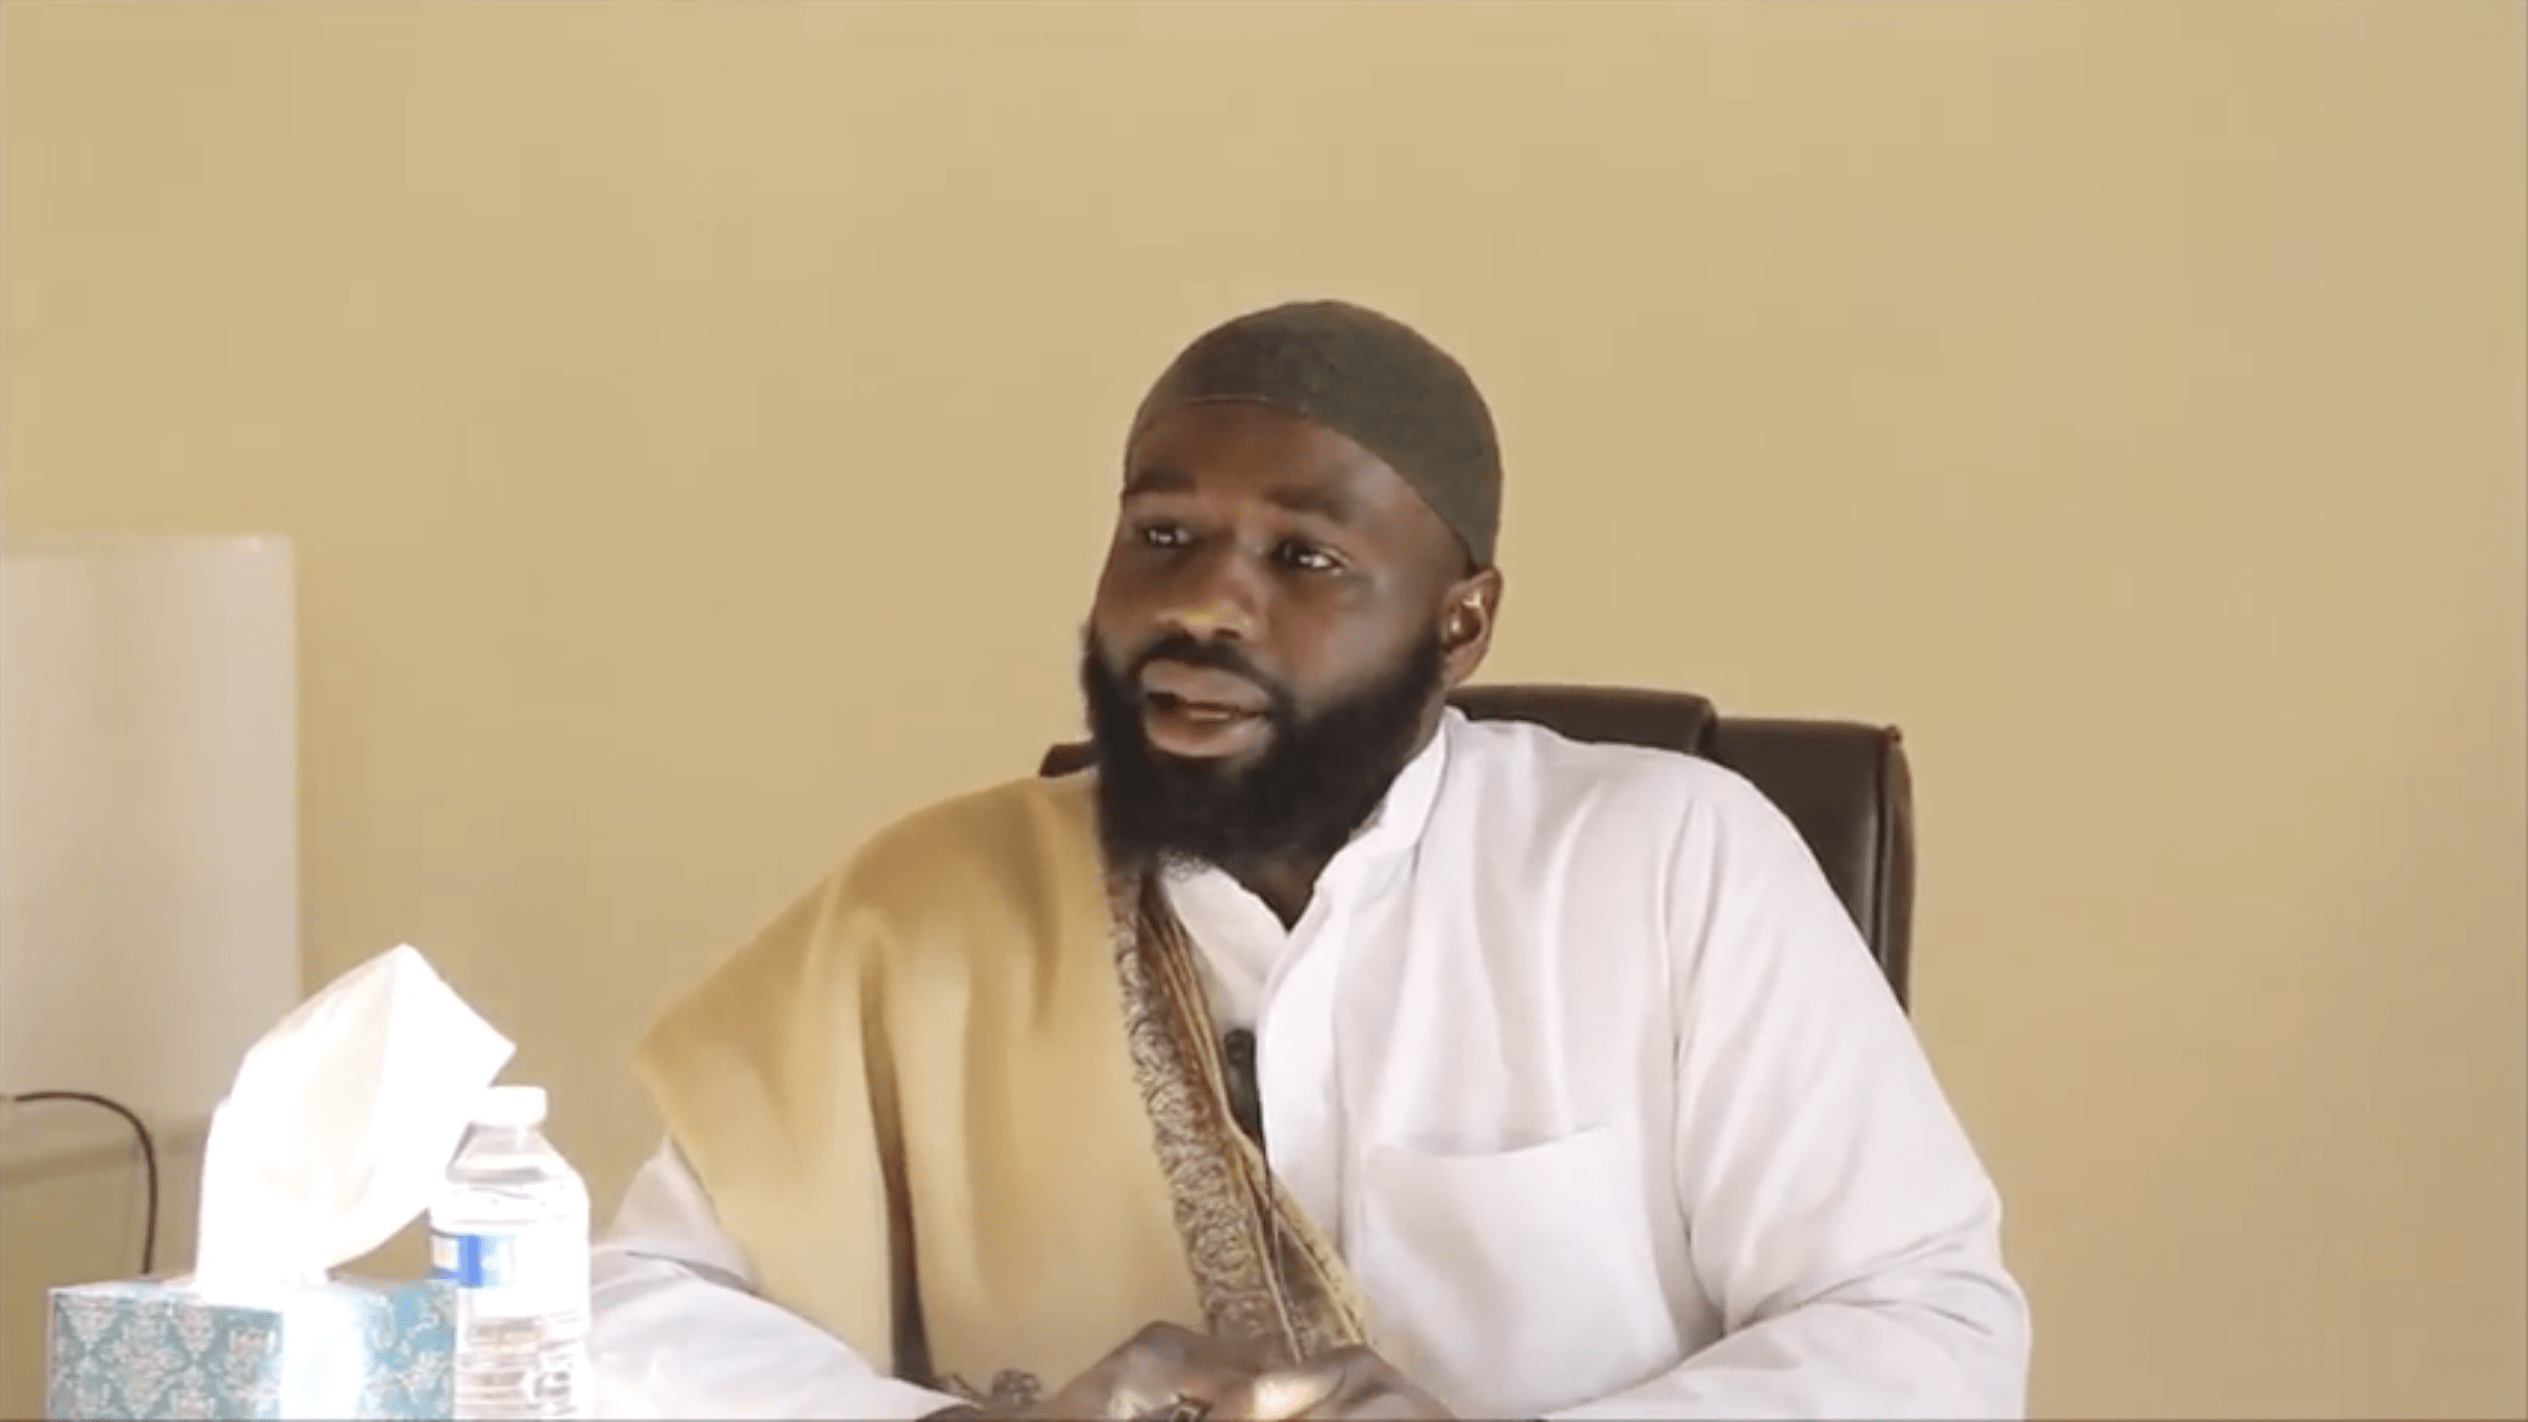 Ibn Ali Miller – How to get Brothers off the Road